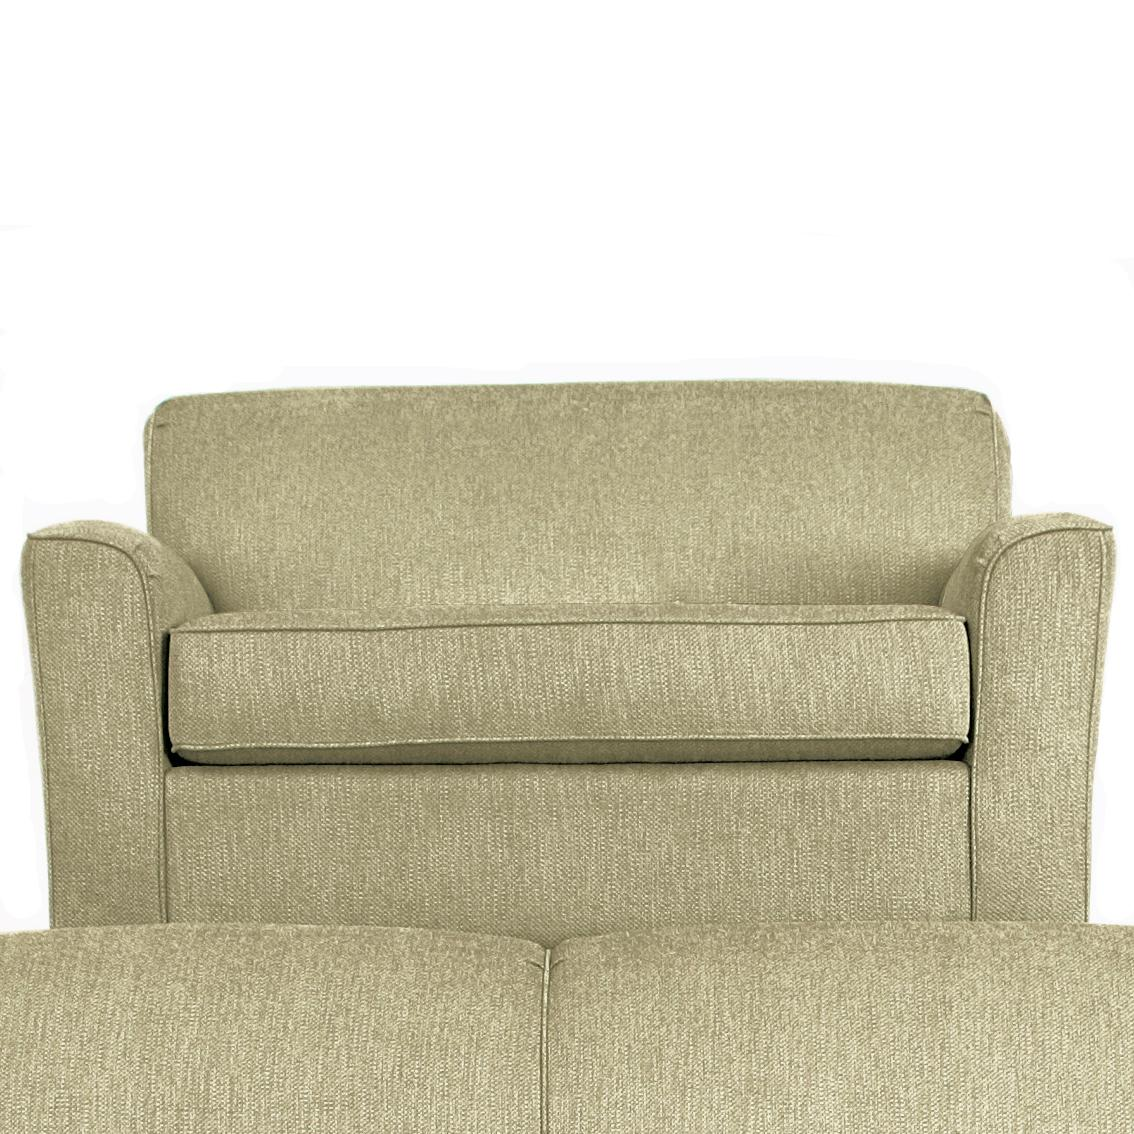 Image of: Dinah Twin Sleeper Sofa Chair